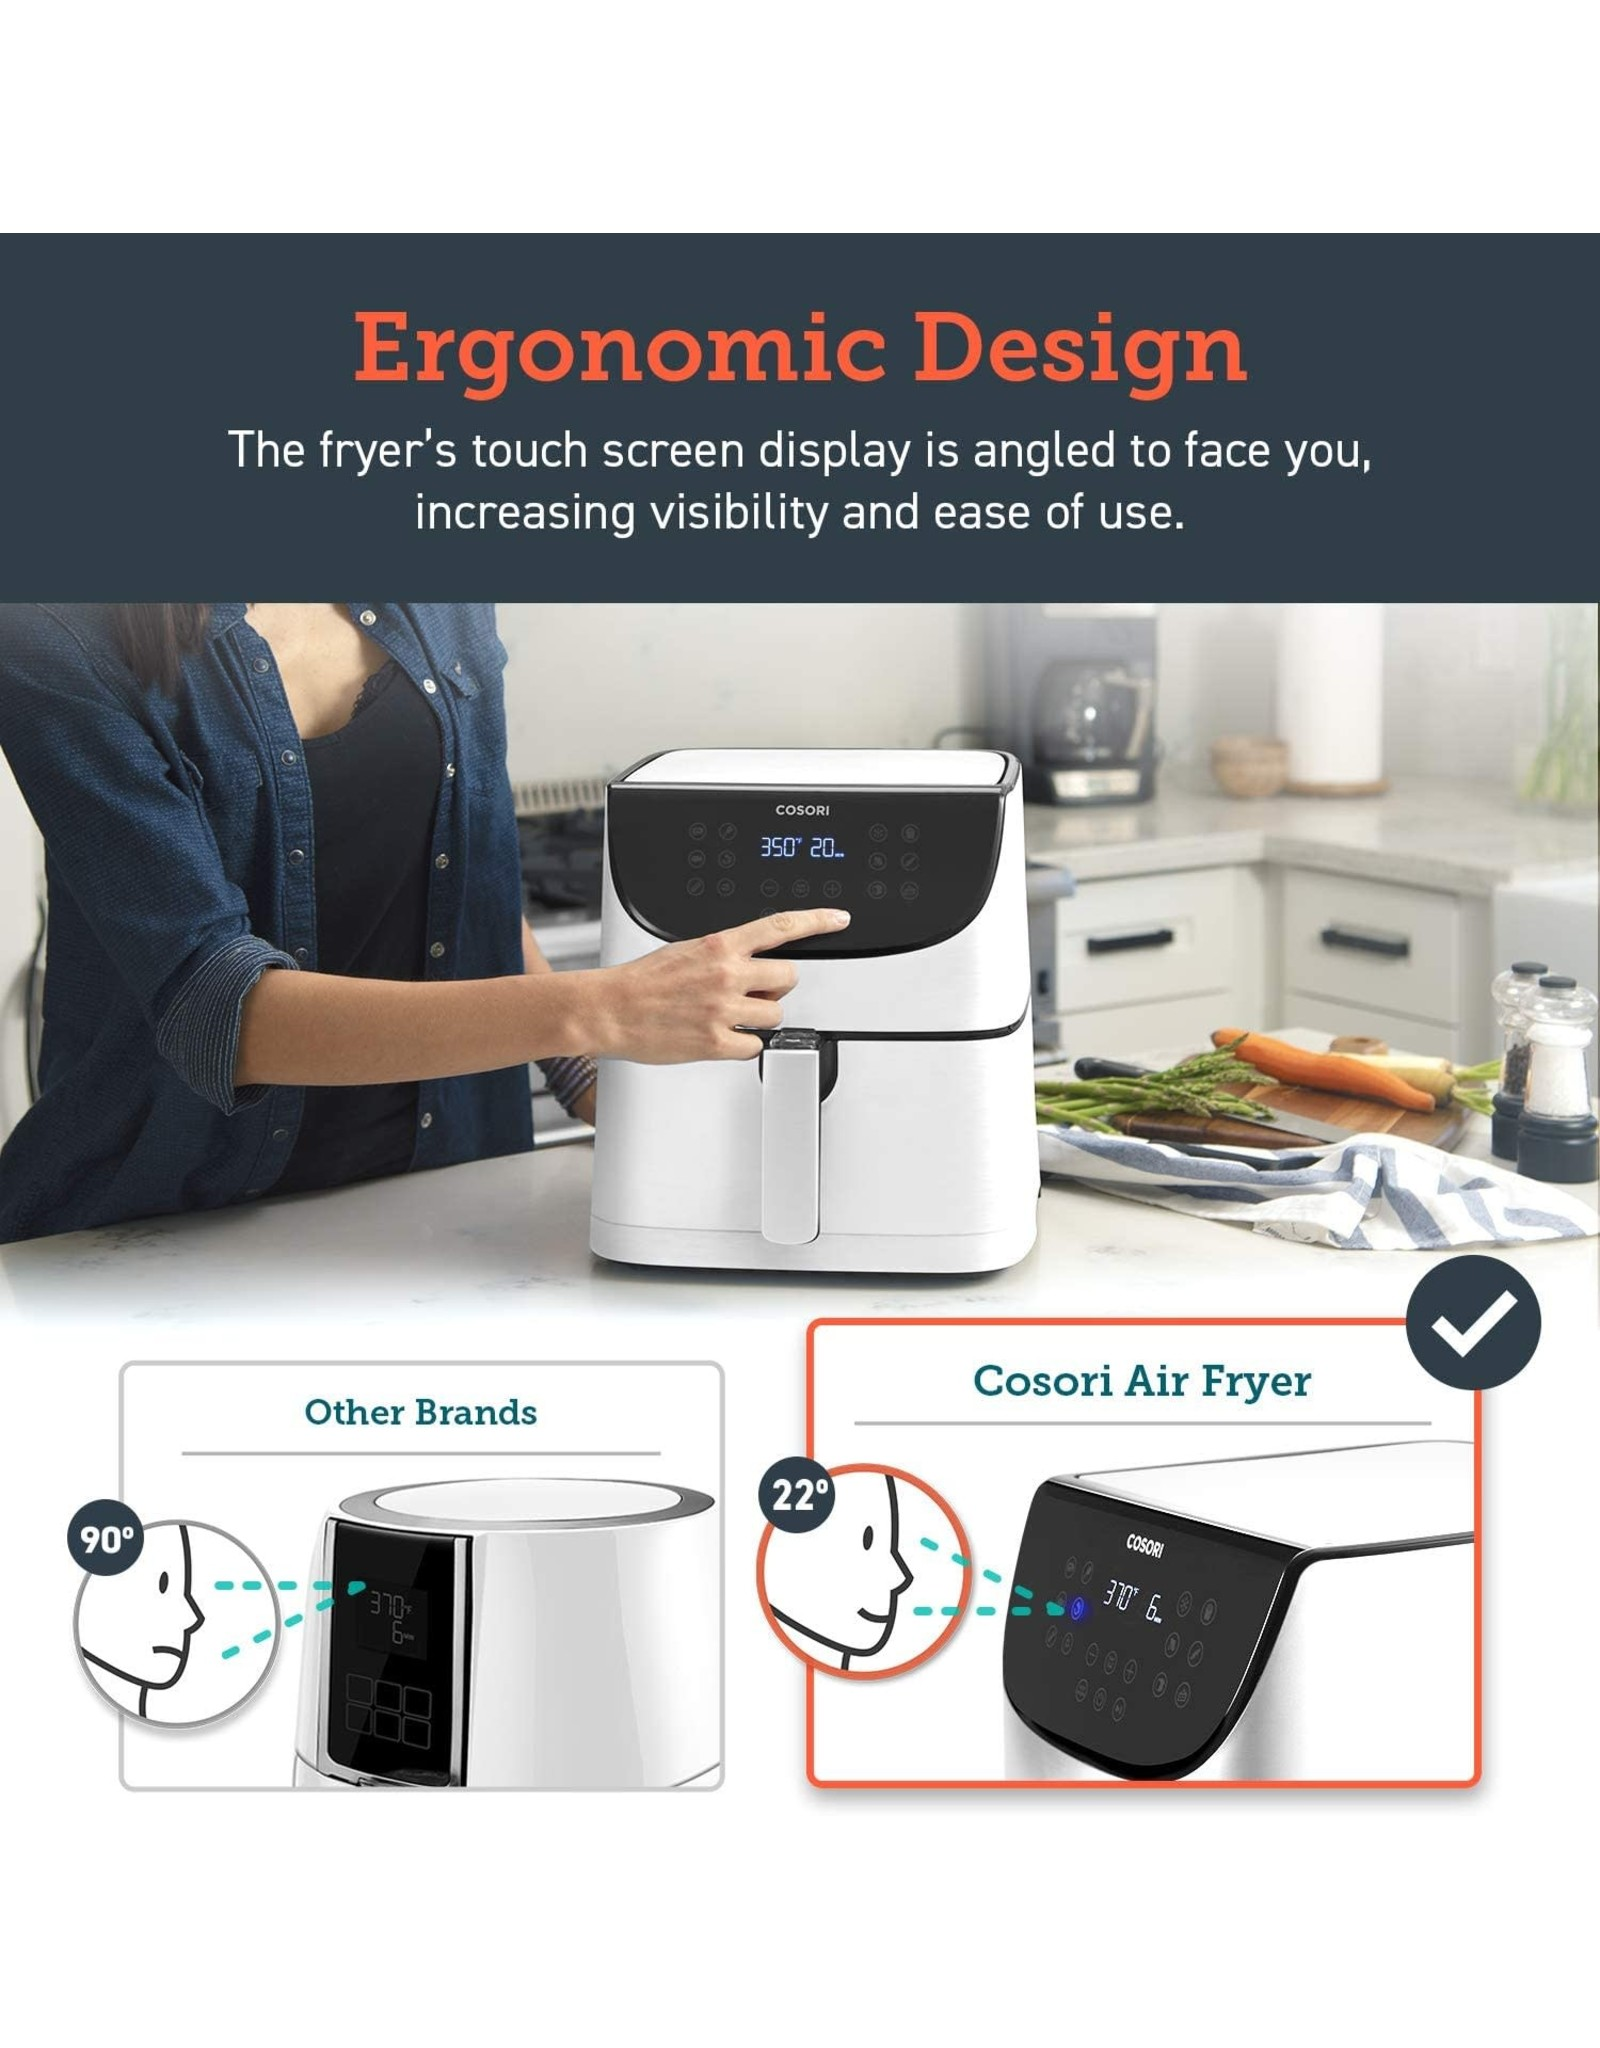 COSORI COSORI Air Fryer(100 Recipes, Rack & 4 Skewers) 1500W Electric Hot Oven Oilless Cooker, 11 Presets, Preheat & Shake Reminder, LED Touch Screen, Nonstick Basket, 3.7 QT, Digital-Creamy White